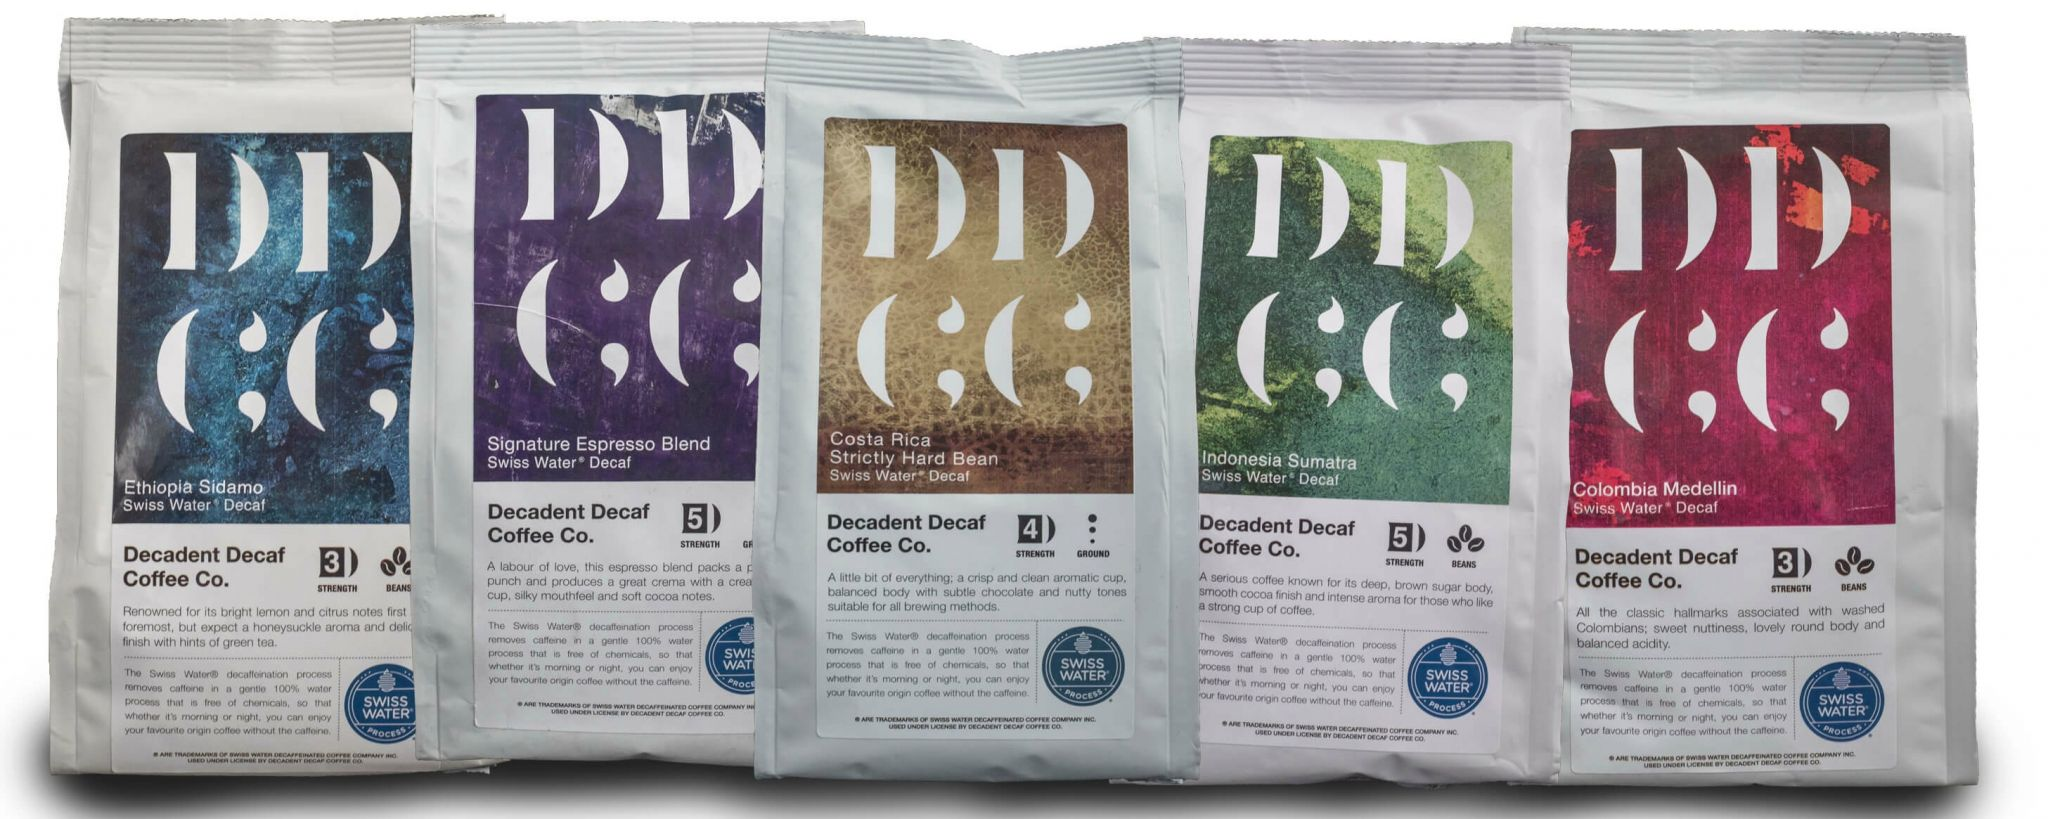 speciality coffees - Decadent Decaf range of coffees